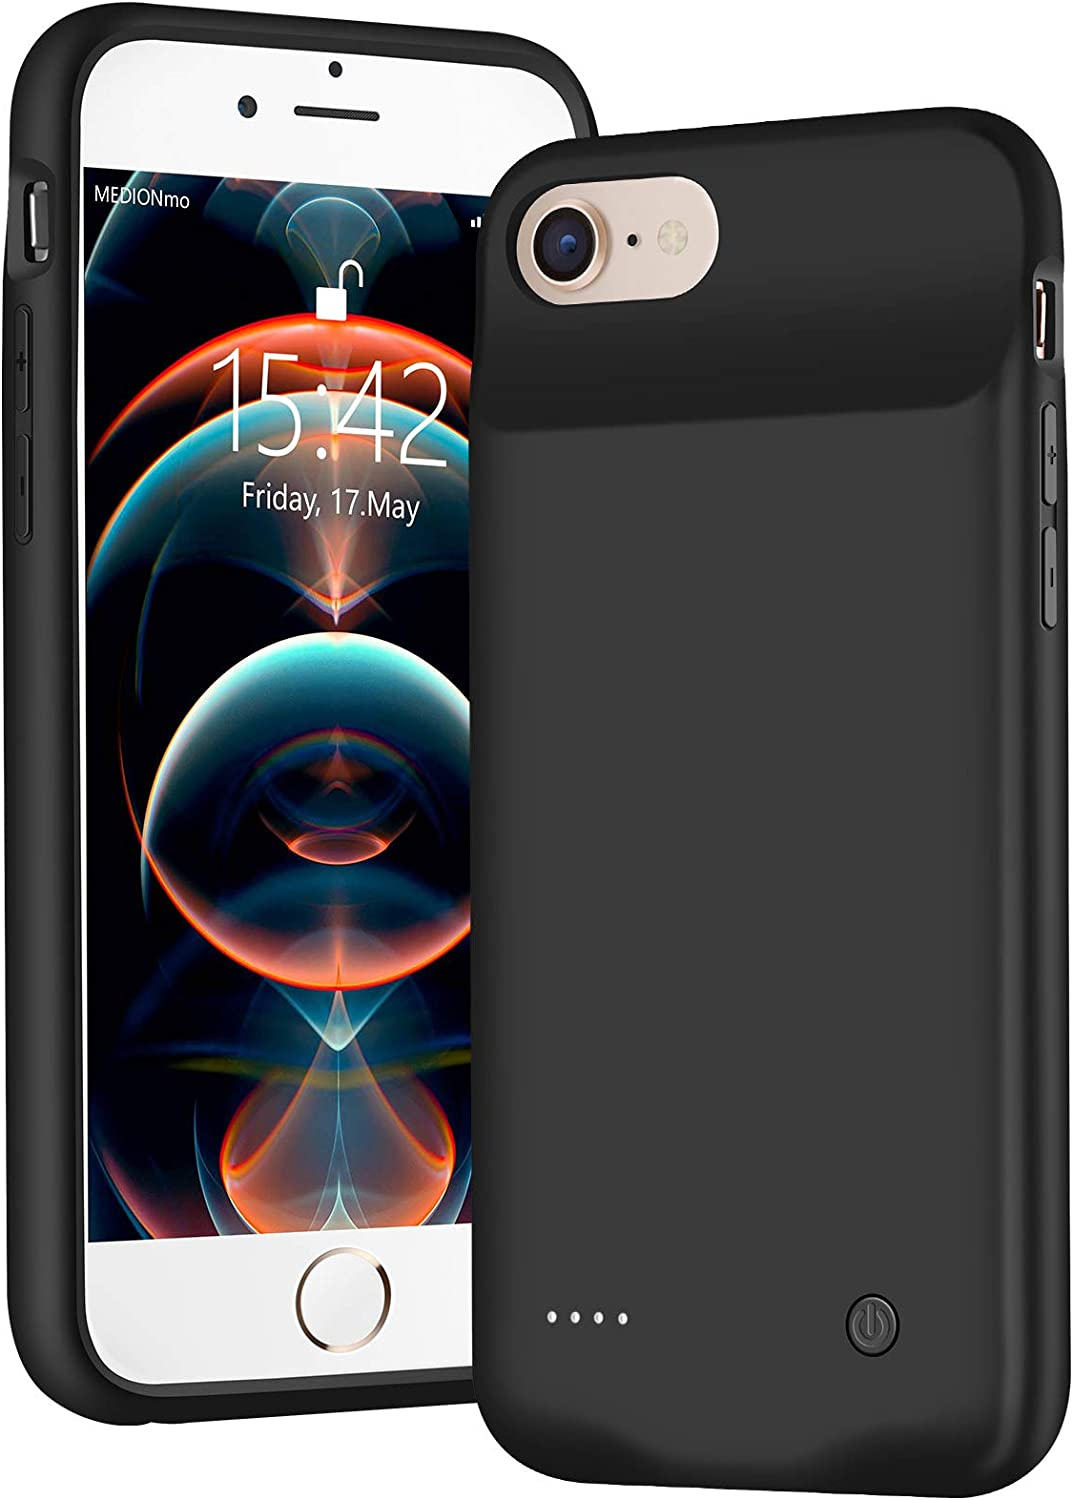 Specell Charging Case for iPhone 6/6s/7/8/SE 2020 Upgraded 3200mAh Slim Portable Battrey Case Rechargeable Extended Battery Pack for Apple iPhone 8/7/6s/6/SE(2020) (4.7inch)